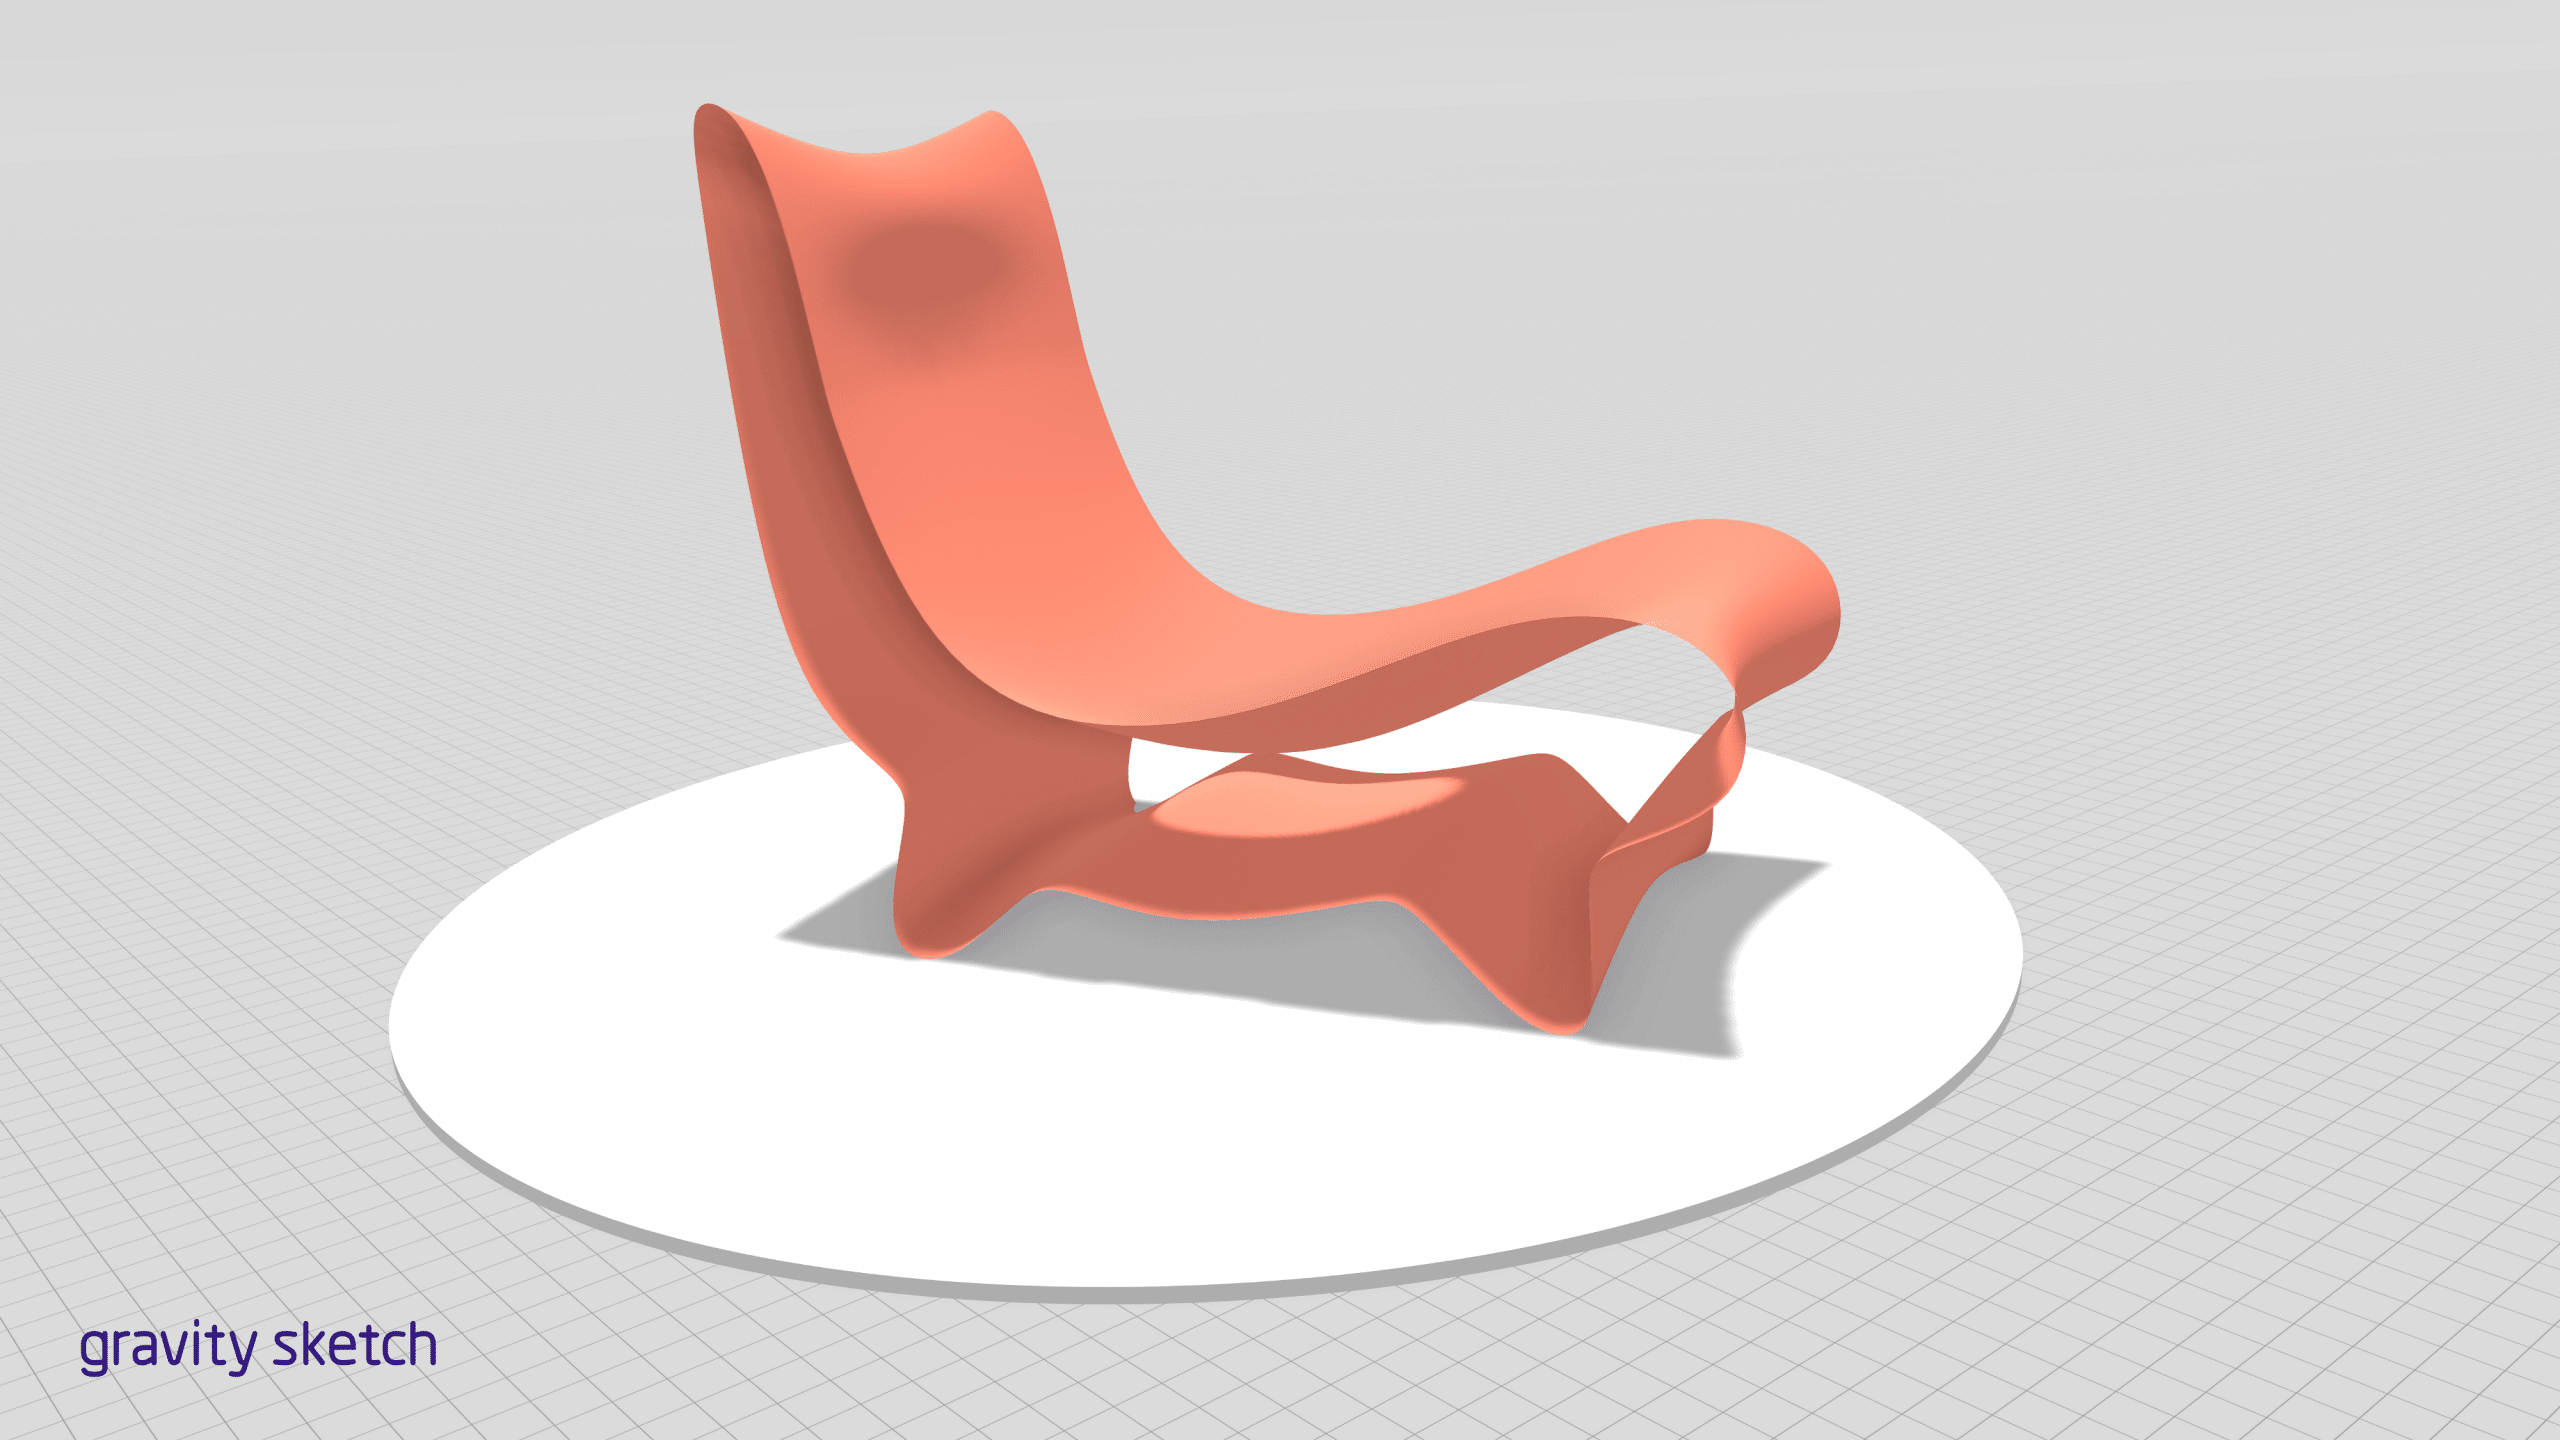 Meet the designers using Gravity Sketch and 3D printing to make rough and ready outdoor furniture.